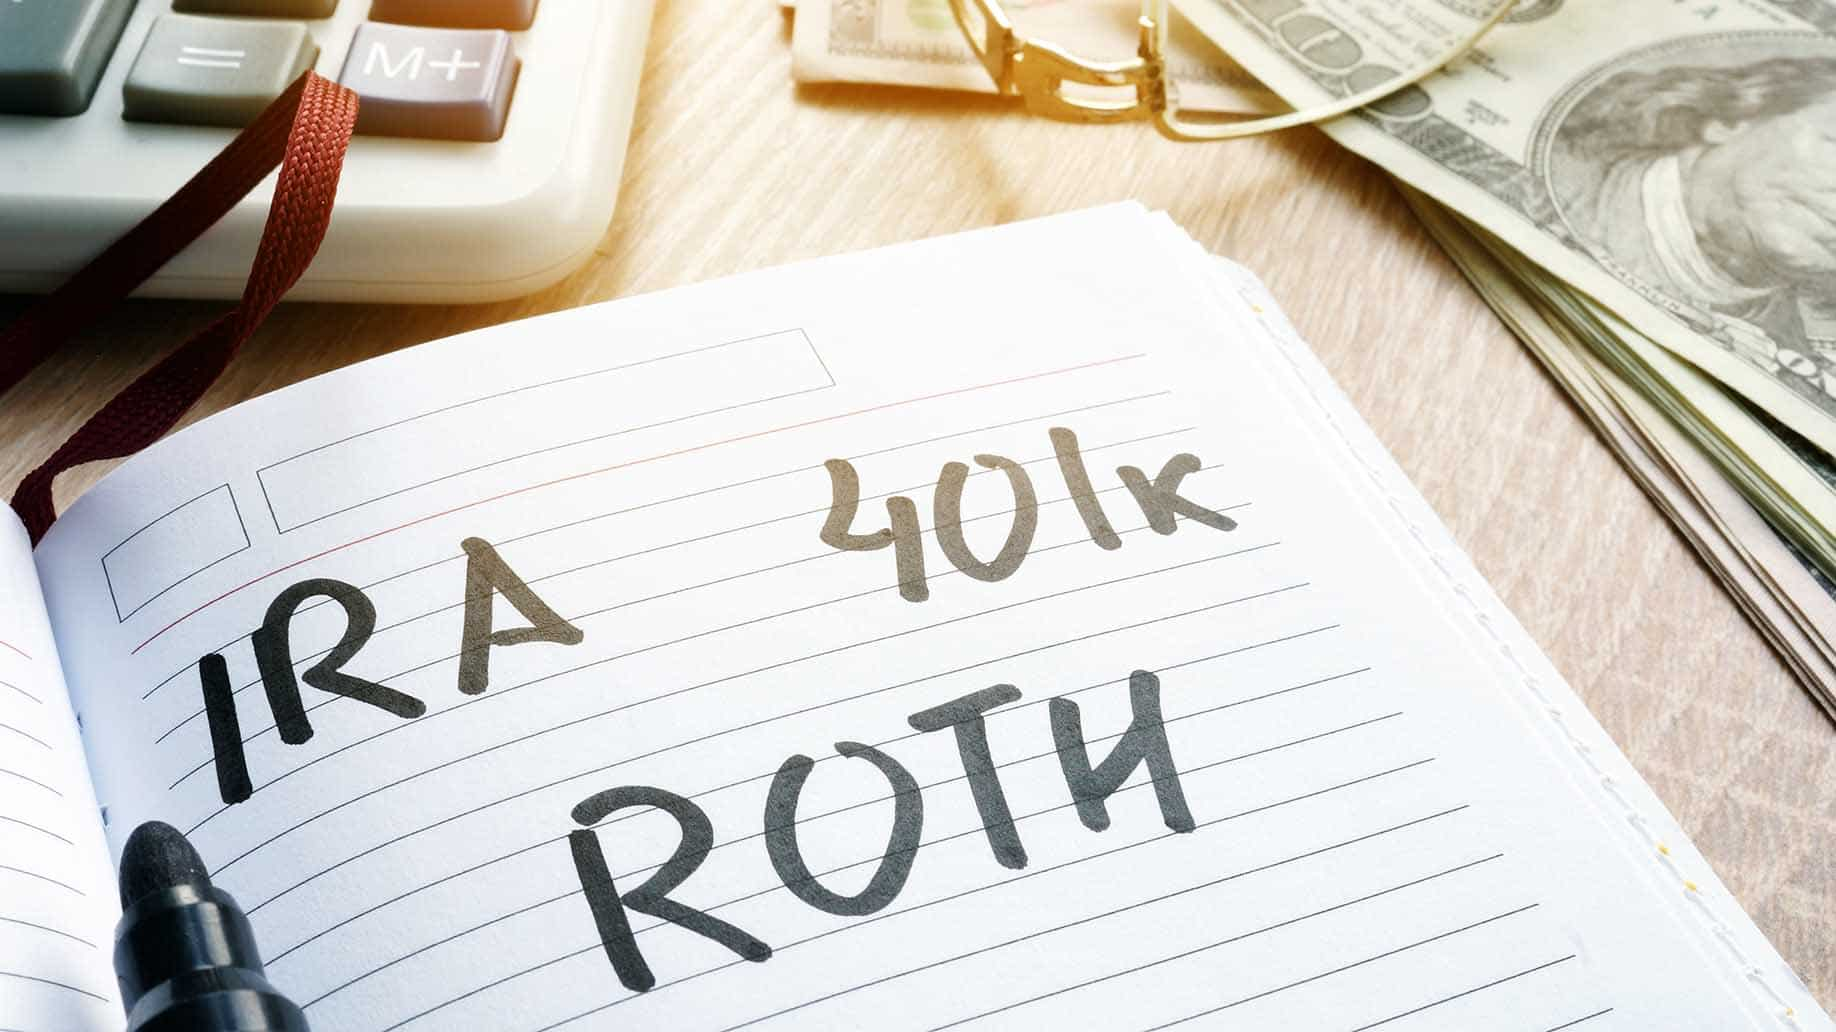 IRA 401k ROTH text written in a notebook